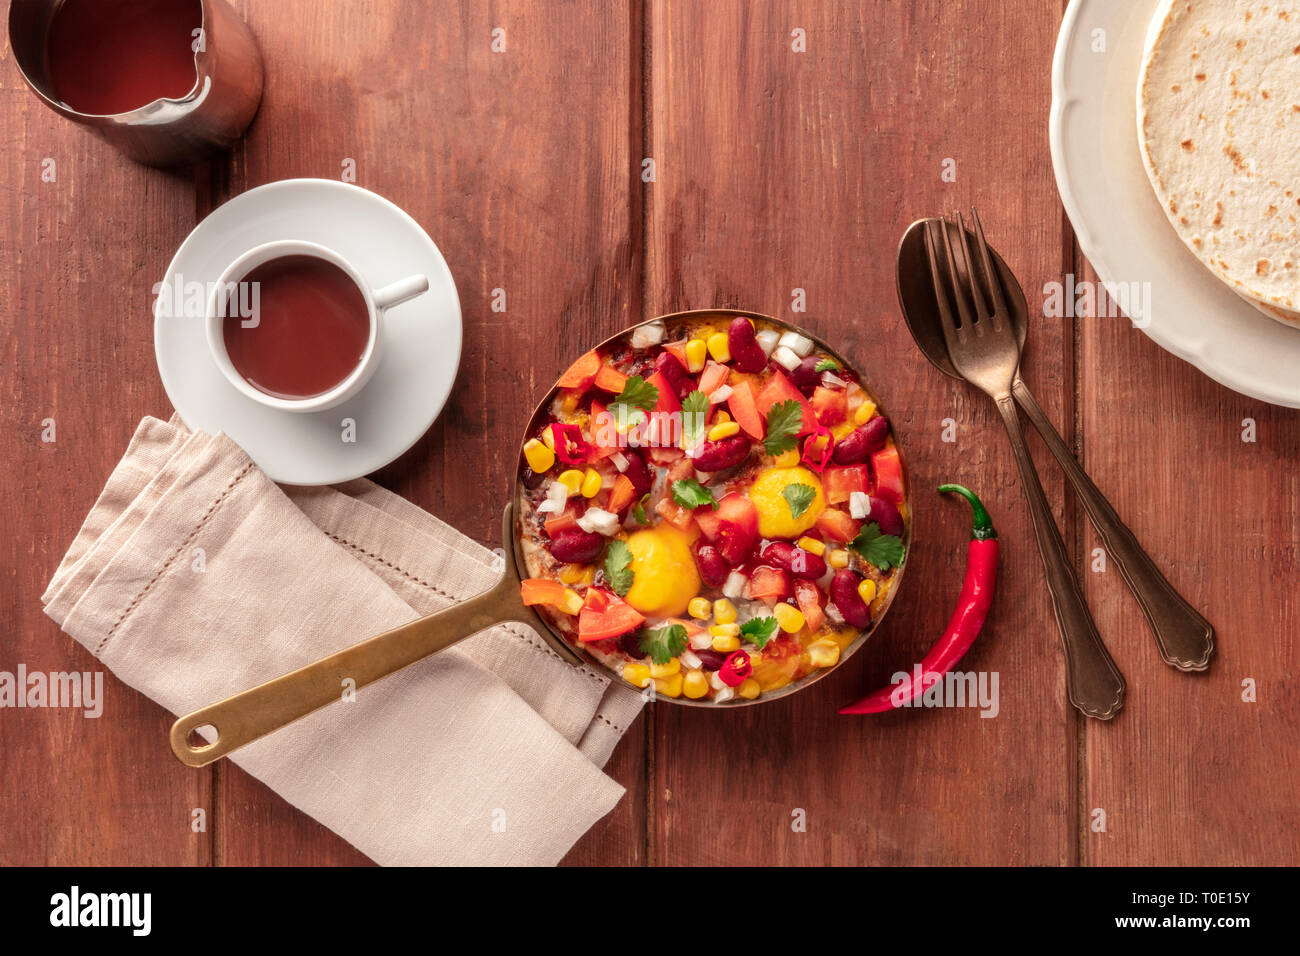 Mexican breakfast food. Huevos rancheros, the fried eggs, shot from the top with the pico de gallo salad, hot chocolate, and tortillas - Stock Image